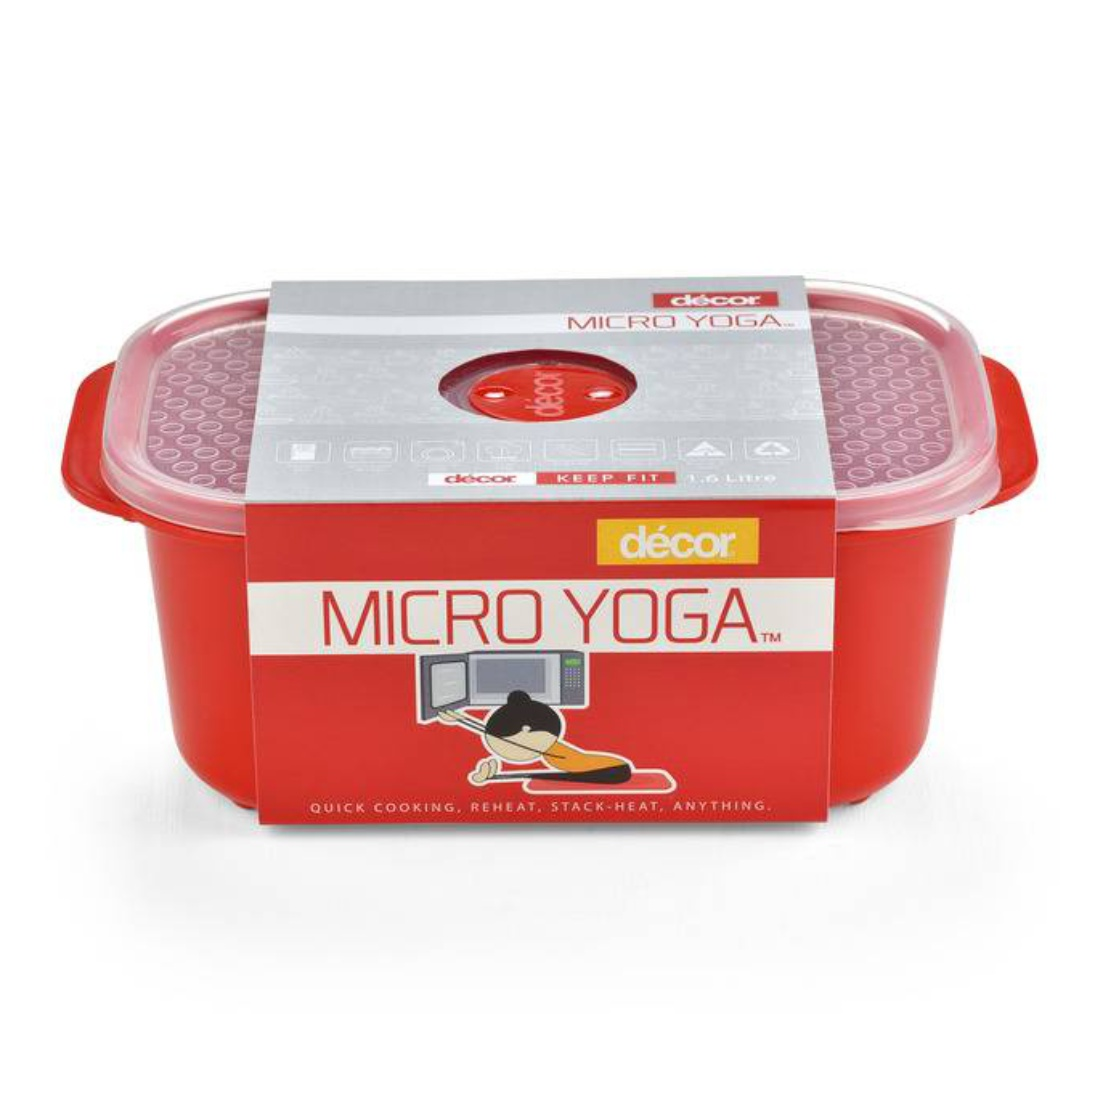 Micro Yoga Oblong 1.6L Plastic Containers by Decor